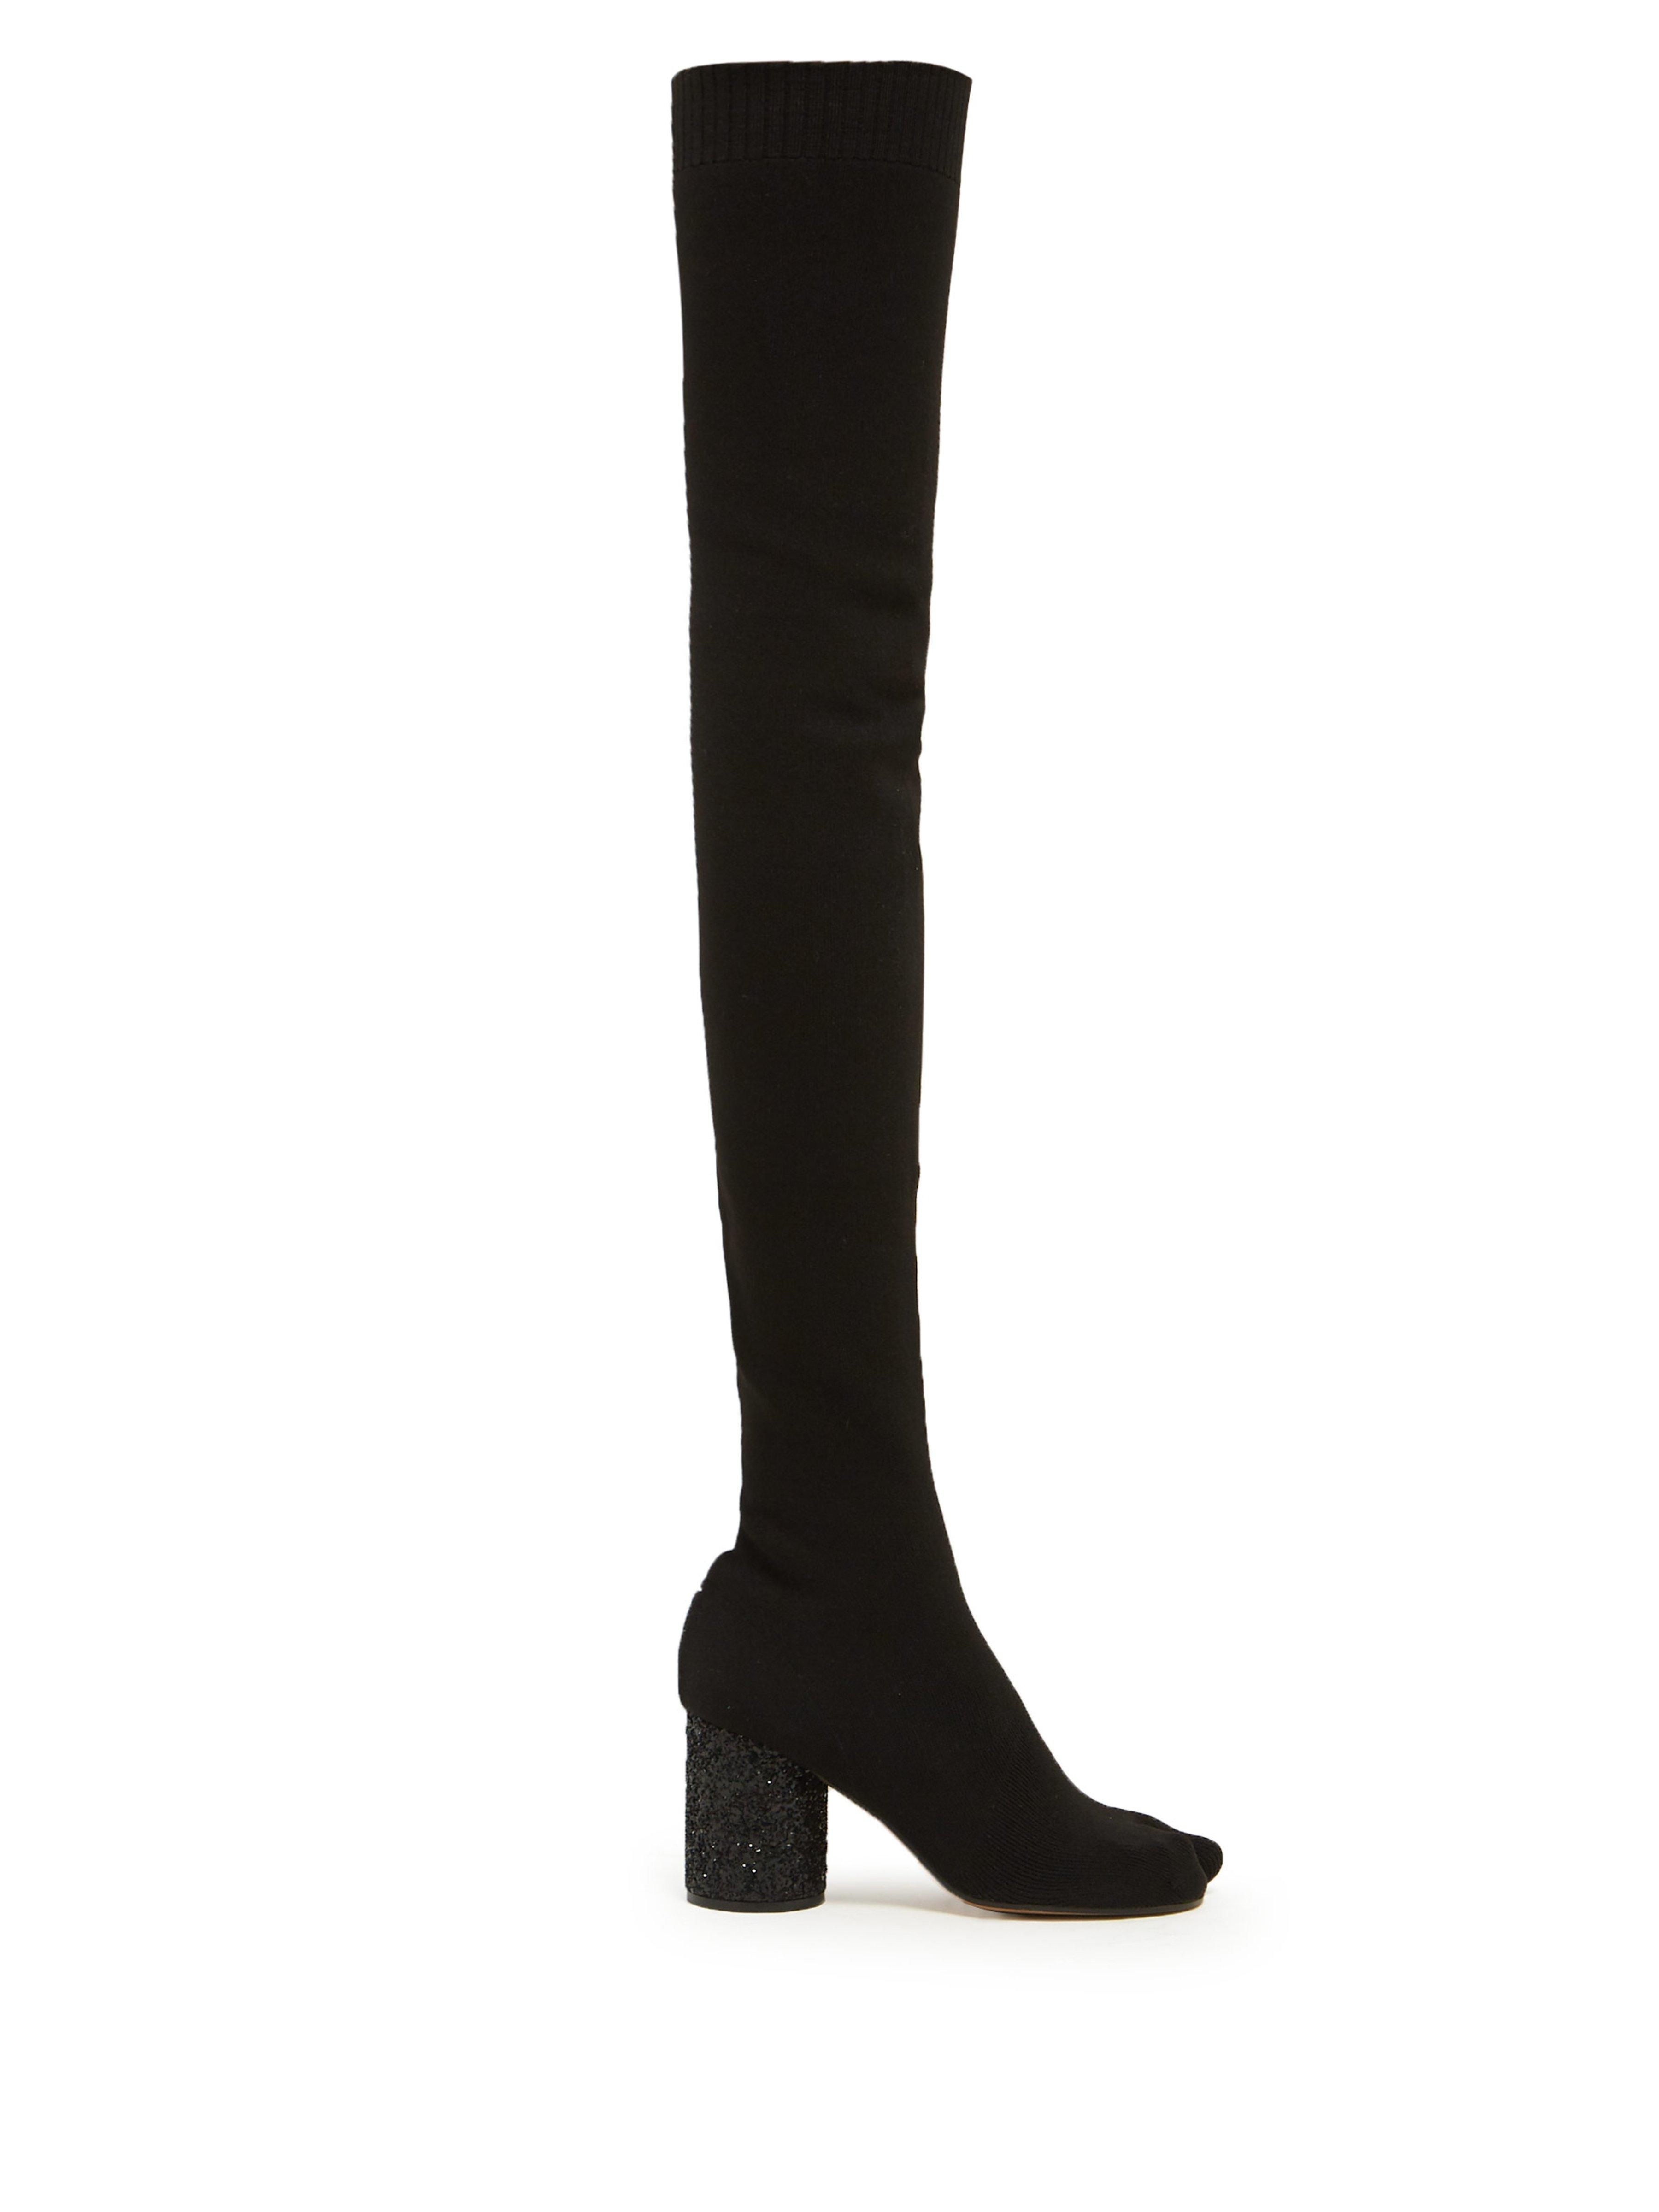 288b5684980 Maison Margiela. Women s Black Tabi Split Toe Glitter Heel Over The Knee  Boots